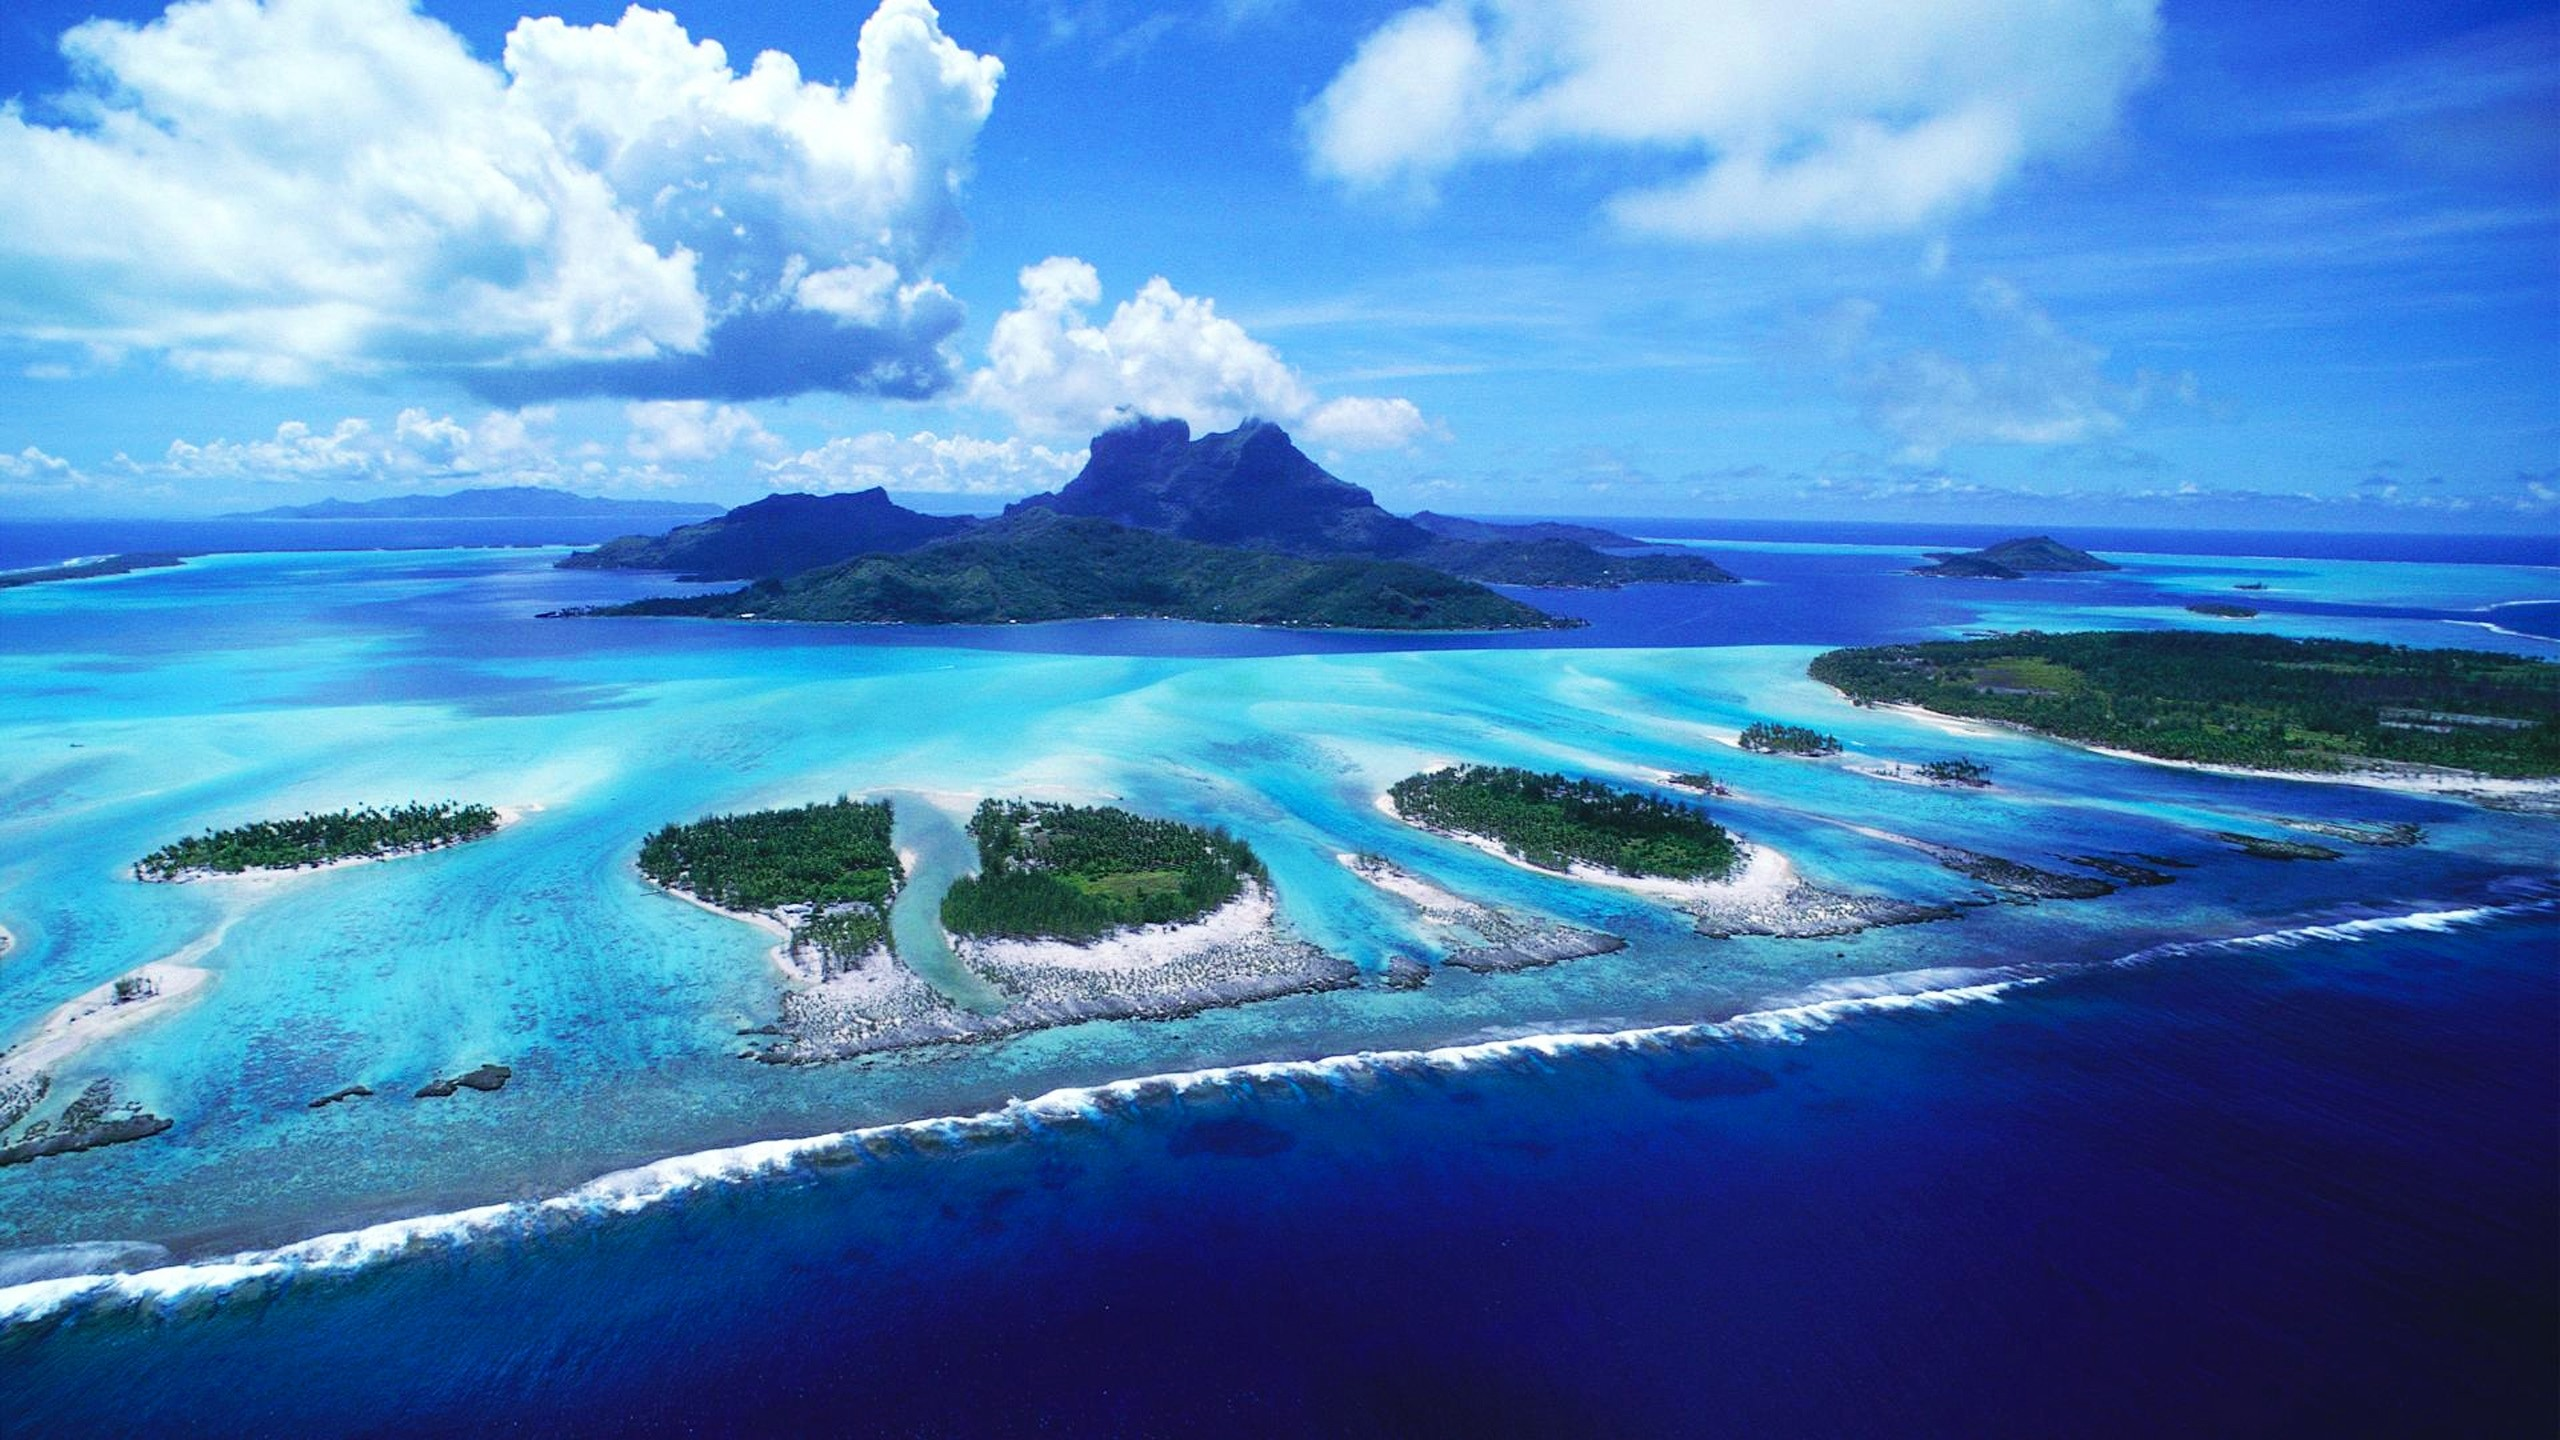 2560x1440 bora bora wallpaper widescreen - Download